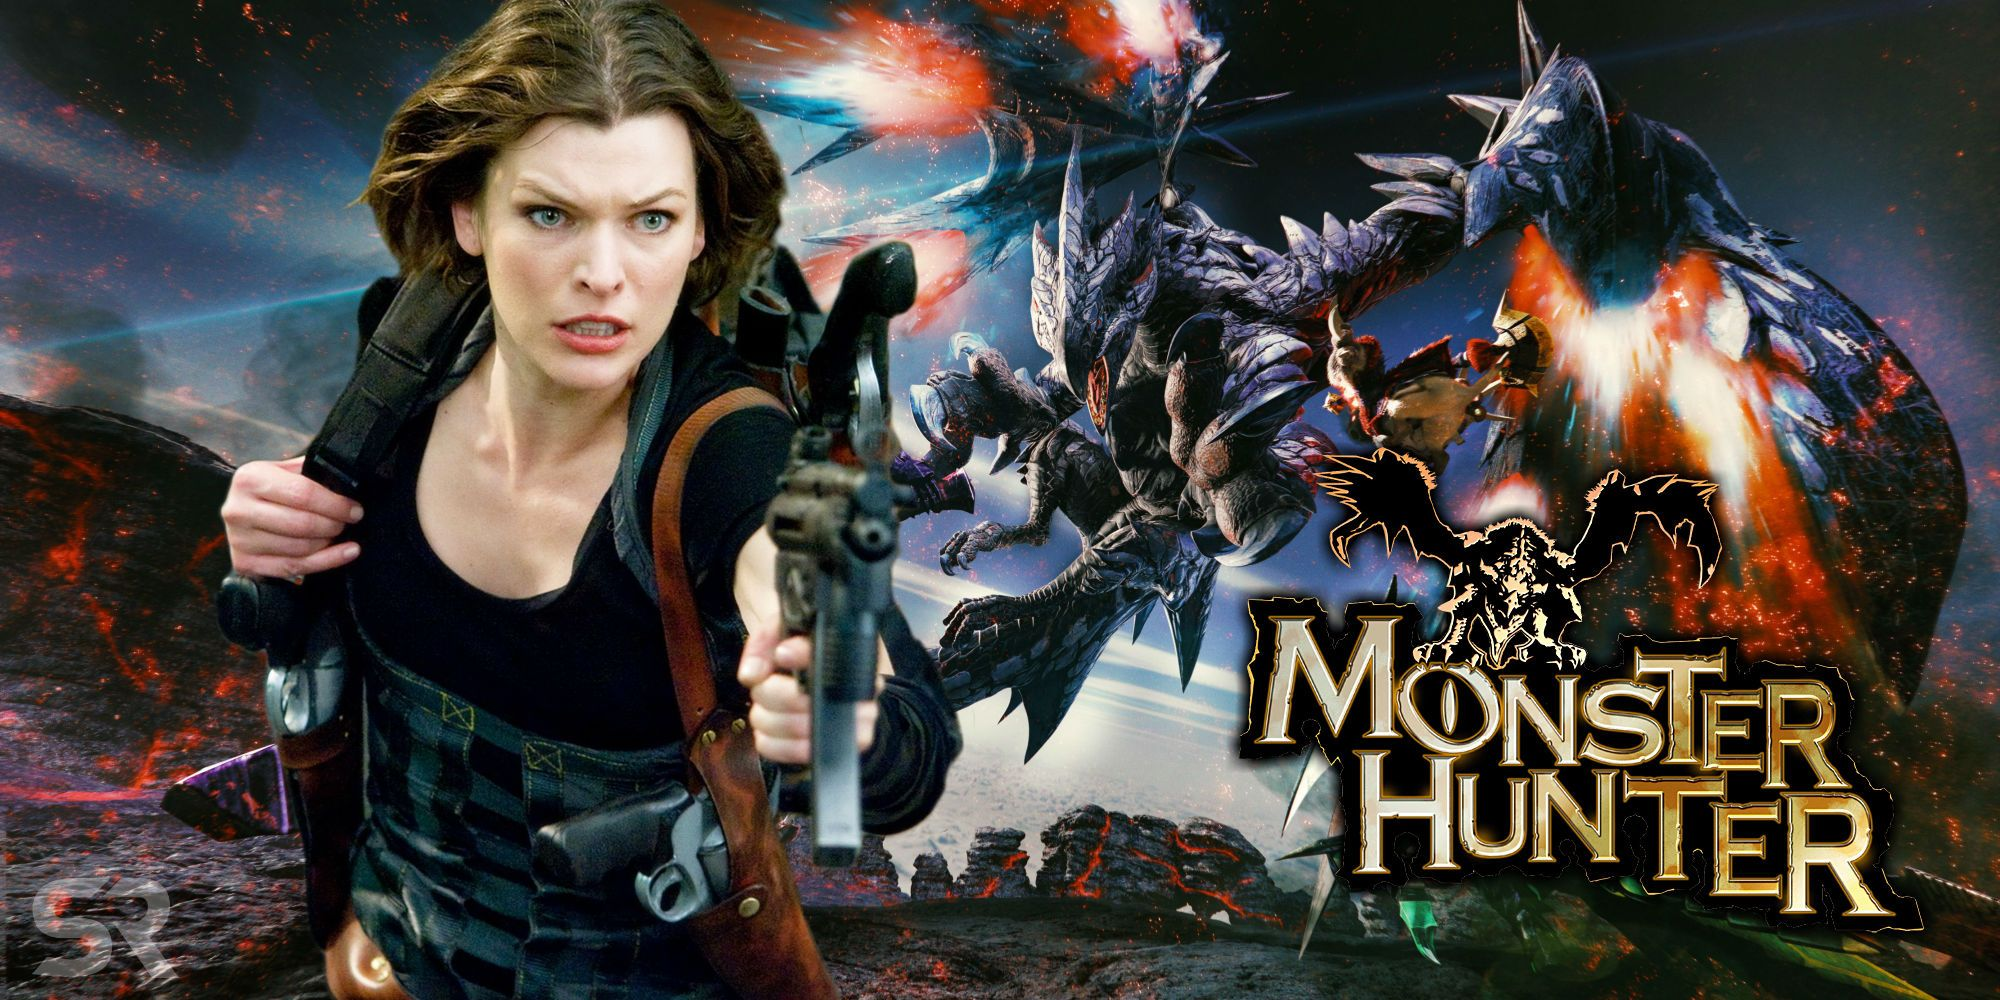 Monster Hunter Milla Jovovich Posts First Image From Movie Set